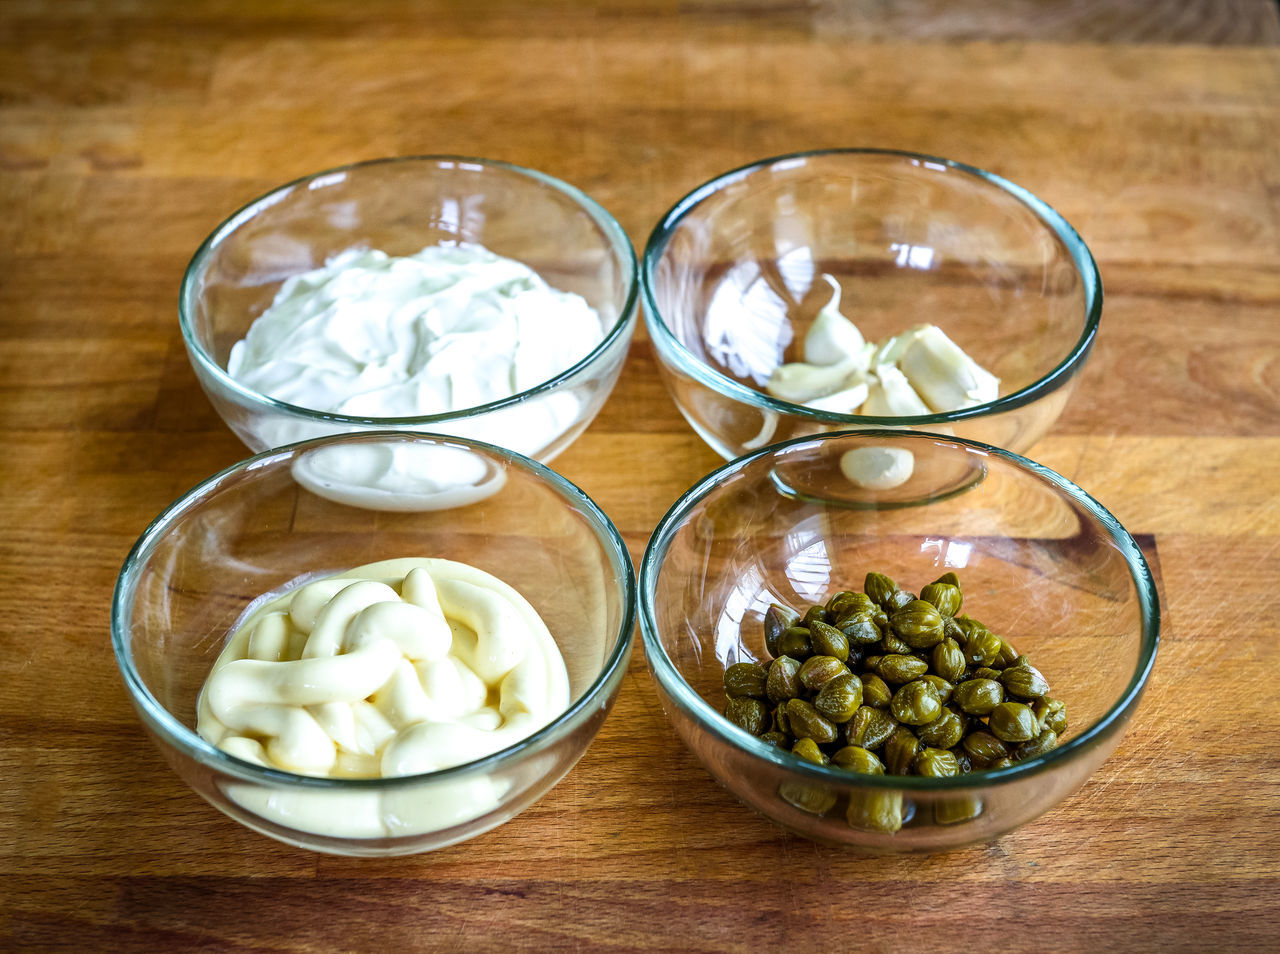 Different ingredients for homemade tartar sauce on wooden desk. Sour creme or creme fraiche, mayonnaise or mayo, capers and garlic in glass bowls. Ready for making of homemade tartar sauce. Homemade Homemade Food Sour Creme Bowl Capers Capri Creme Fraiche Food Food And Drink Freshness Healthy Eating High Angle View Indoors  Mayonnaise No People Preparation  Table Tartar Sauce Wood - Material